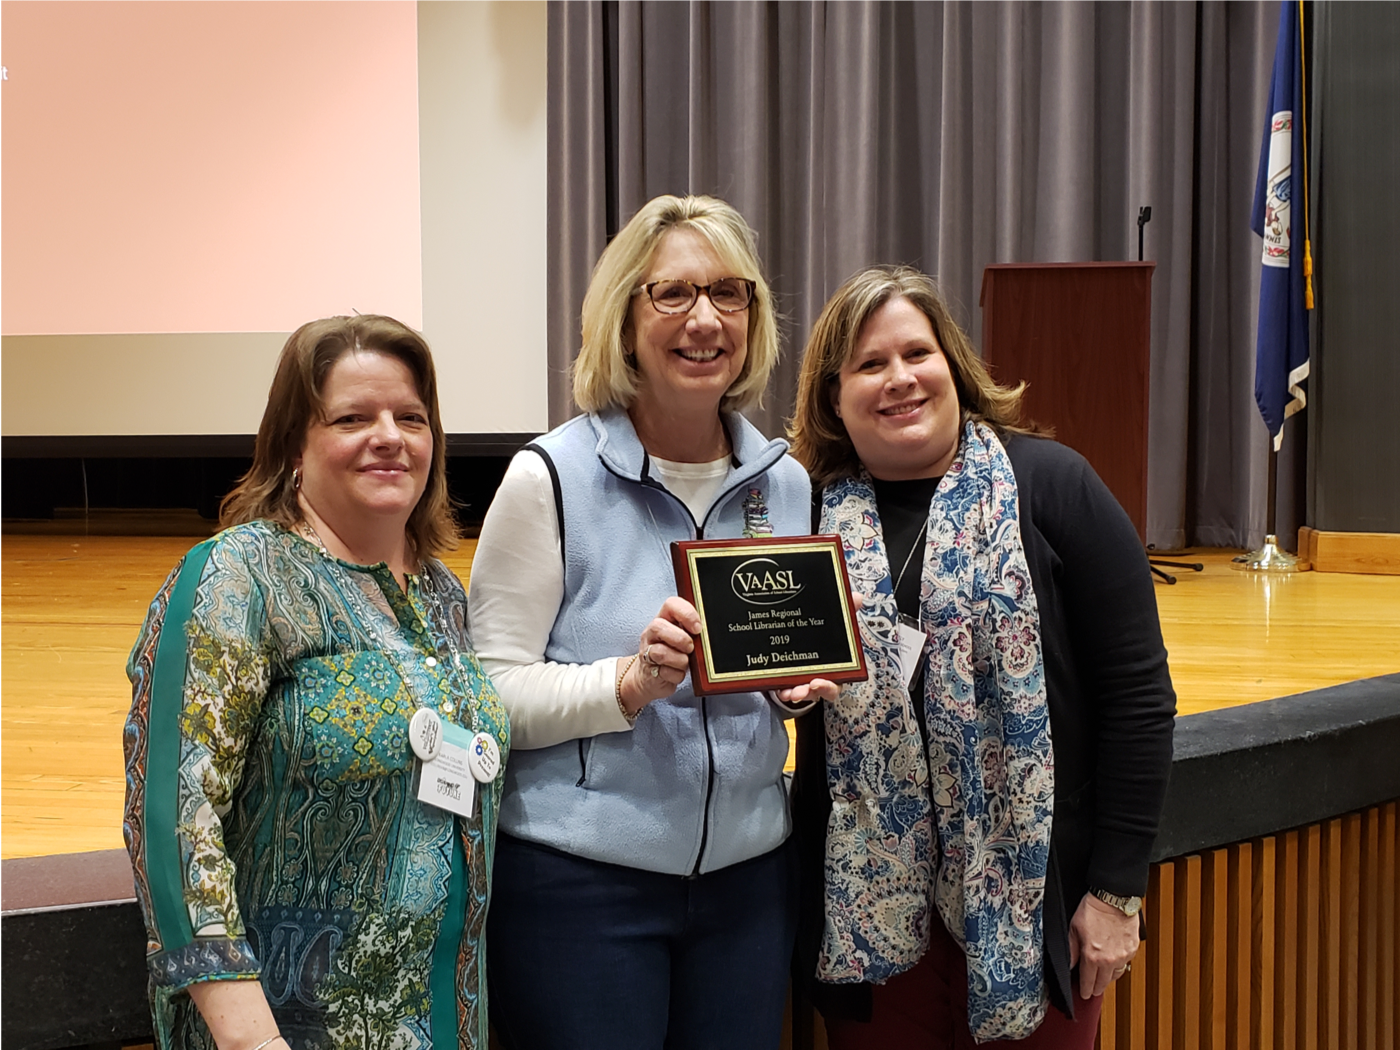 Judy Deichman receiving the VAASL James Regional Librarian of the Year Award